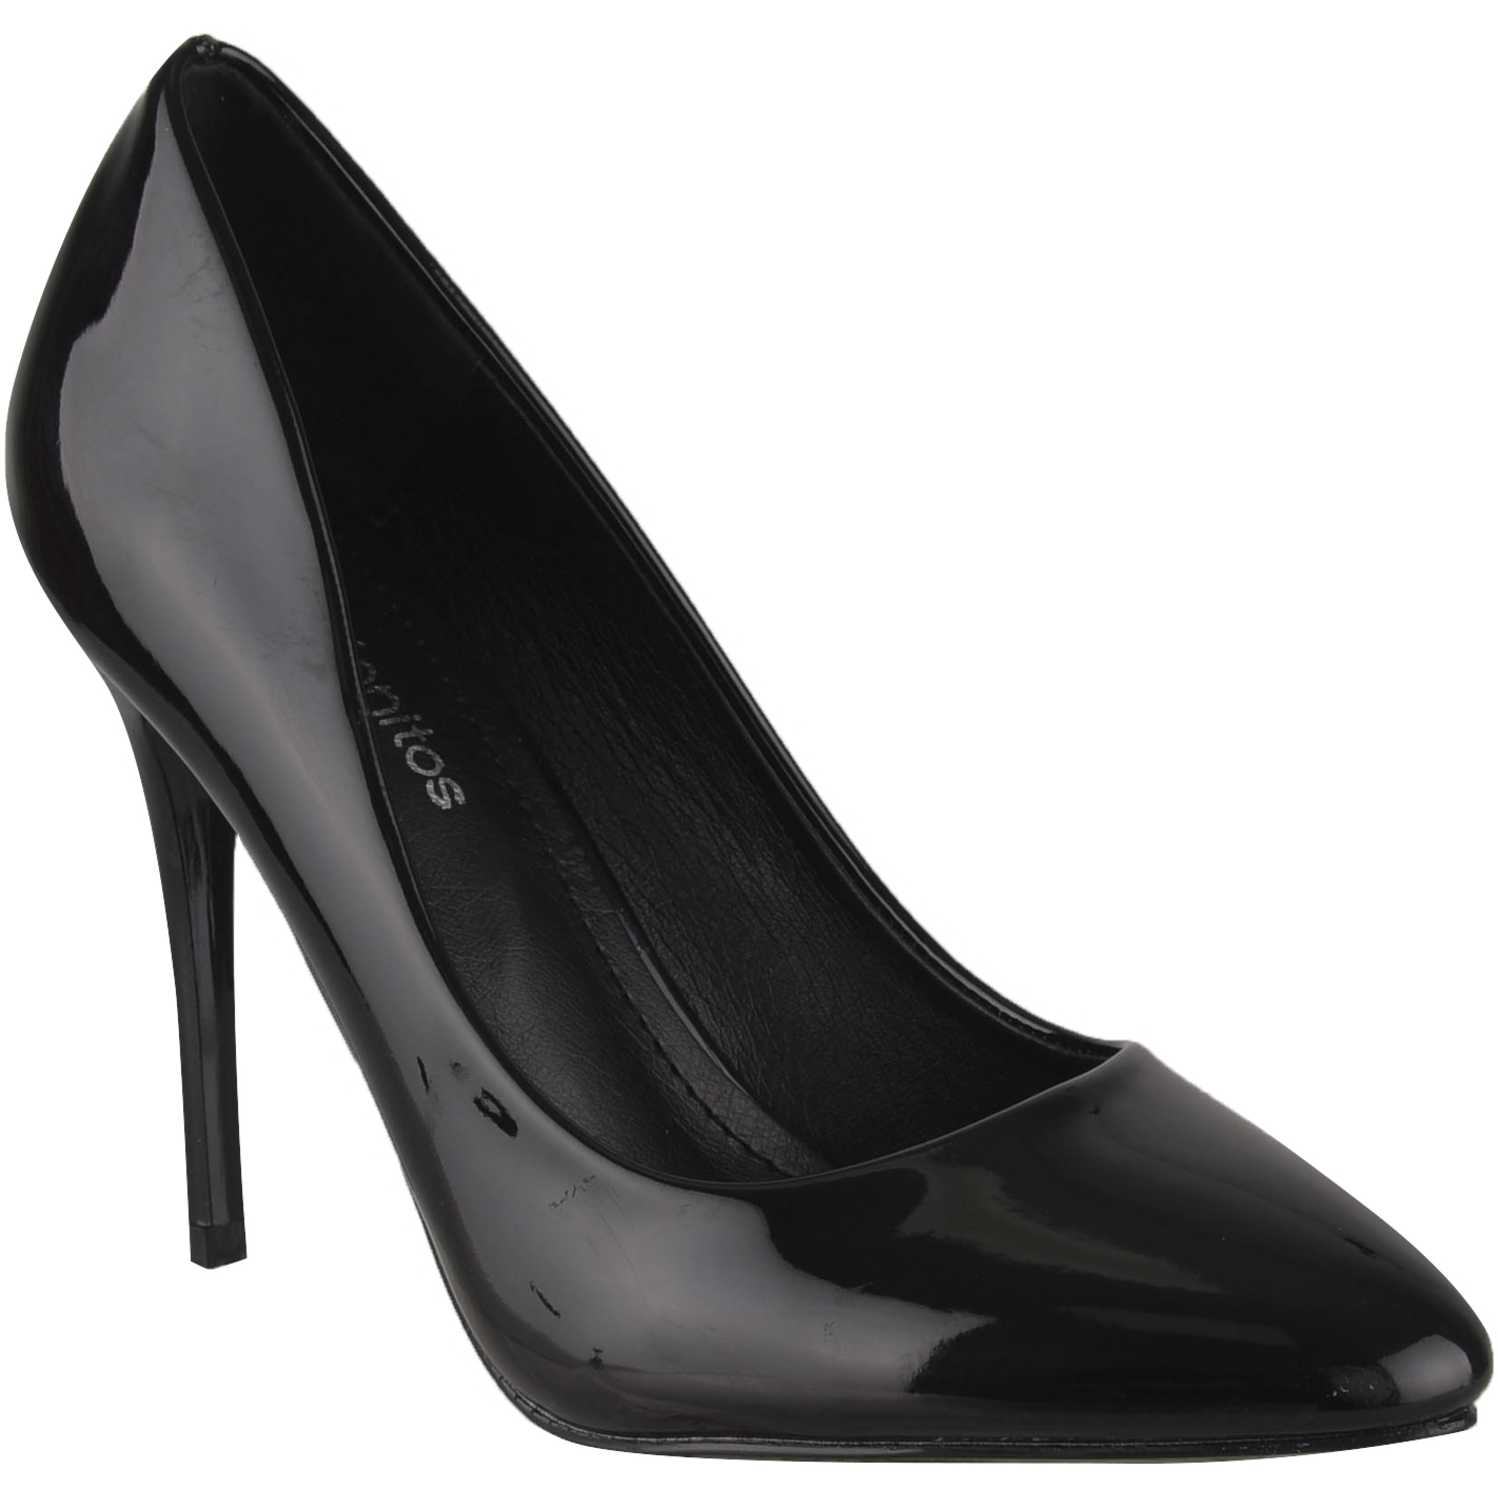 Platanitos Cv 111 Negro Estiletos y pumps